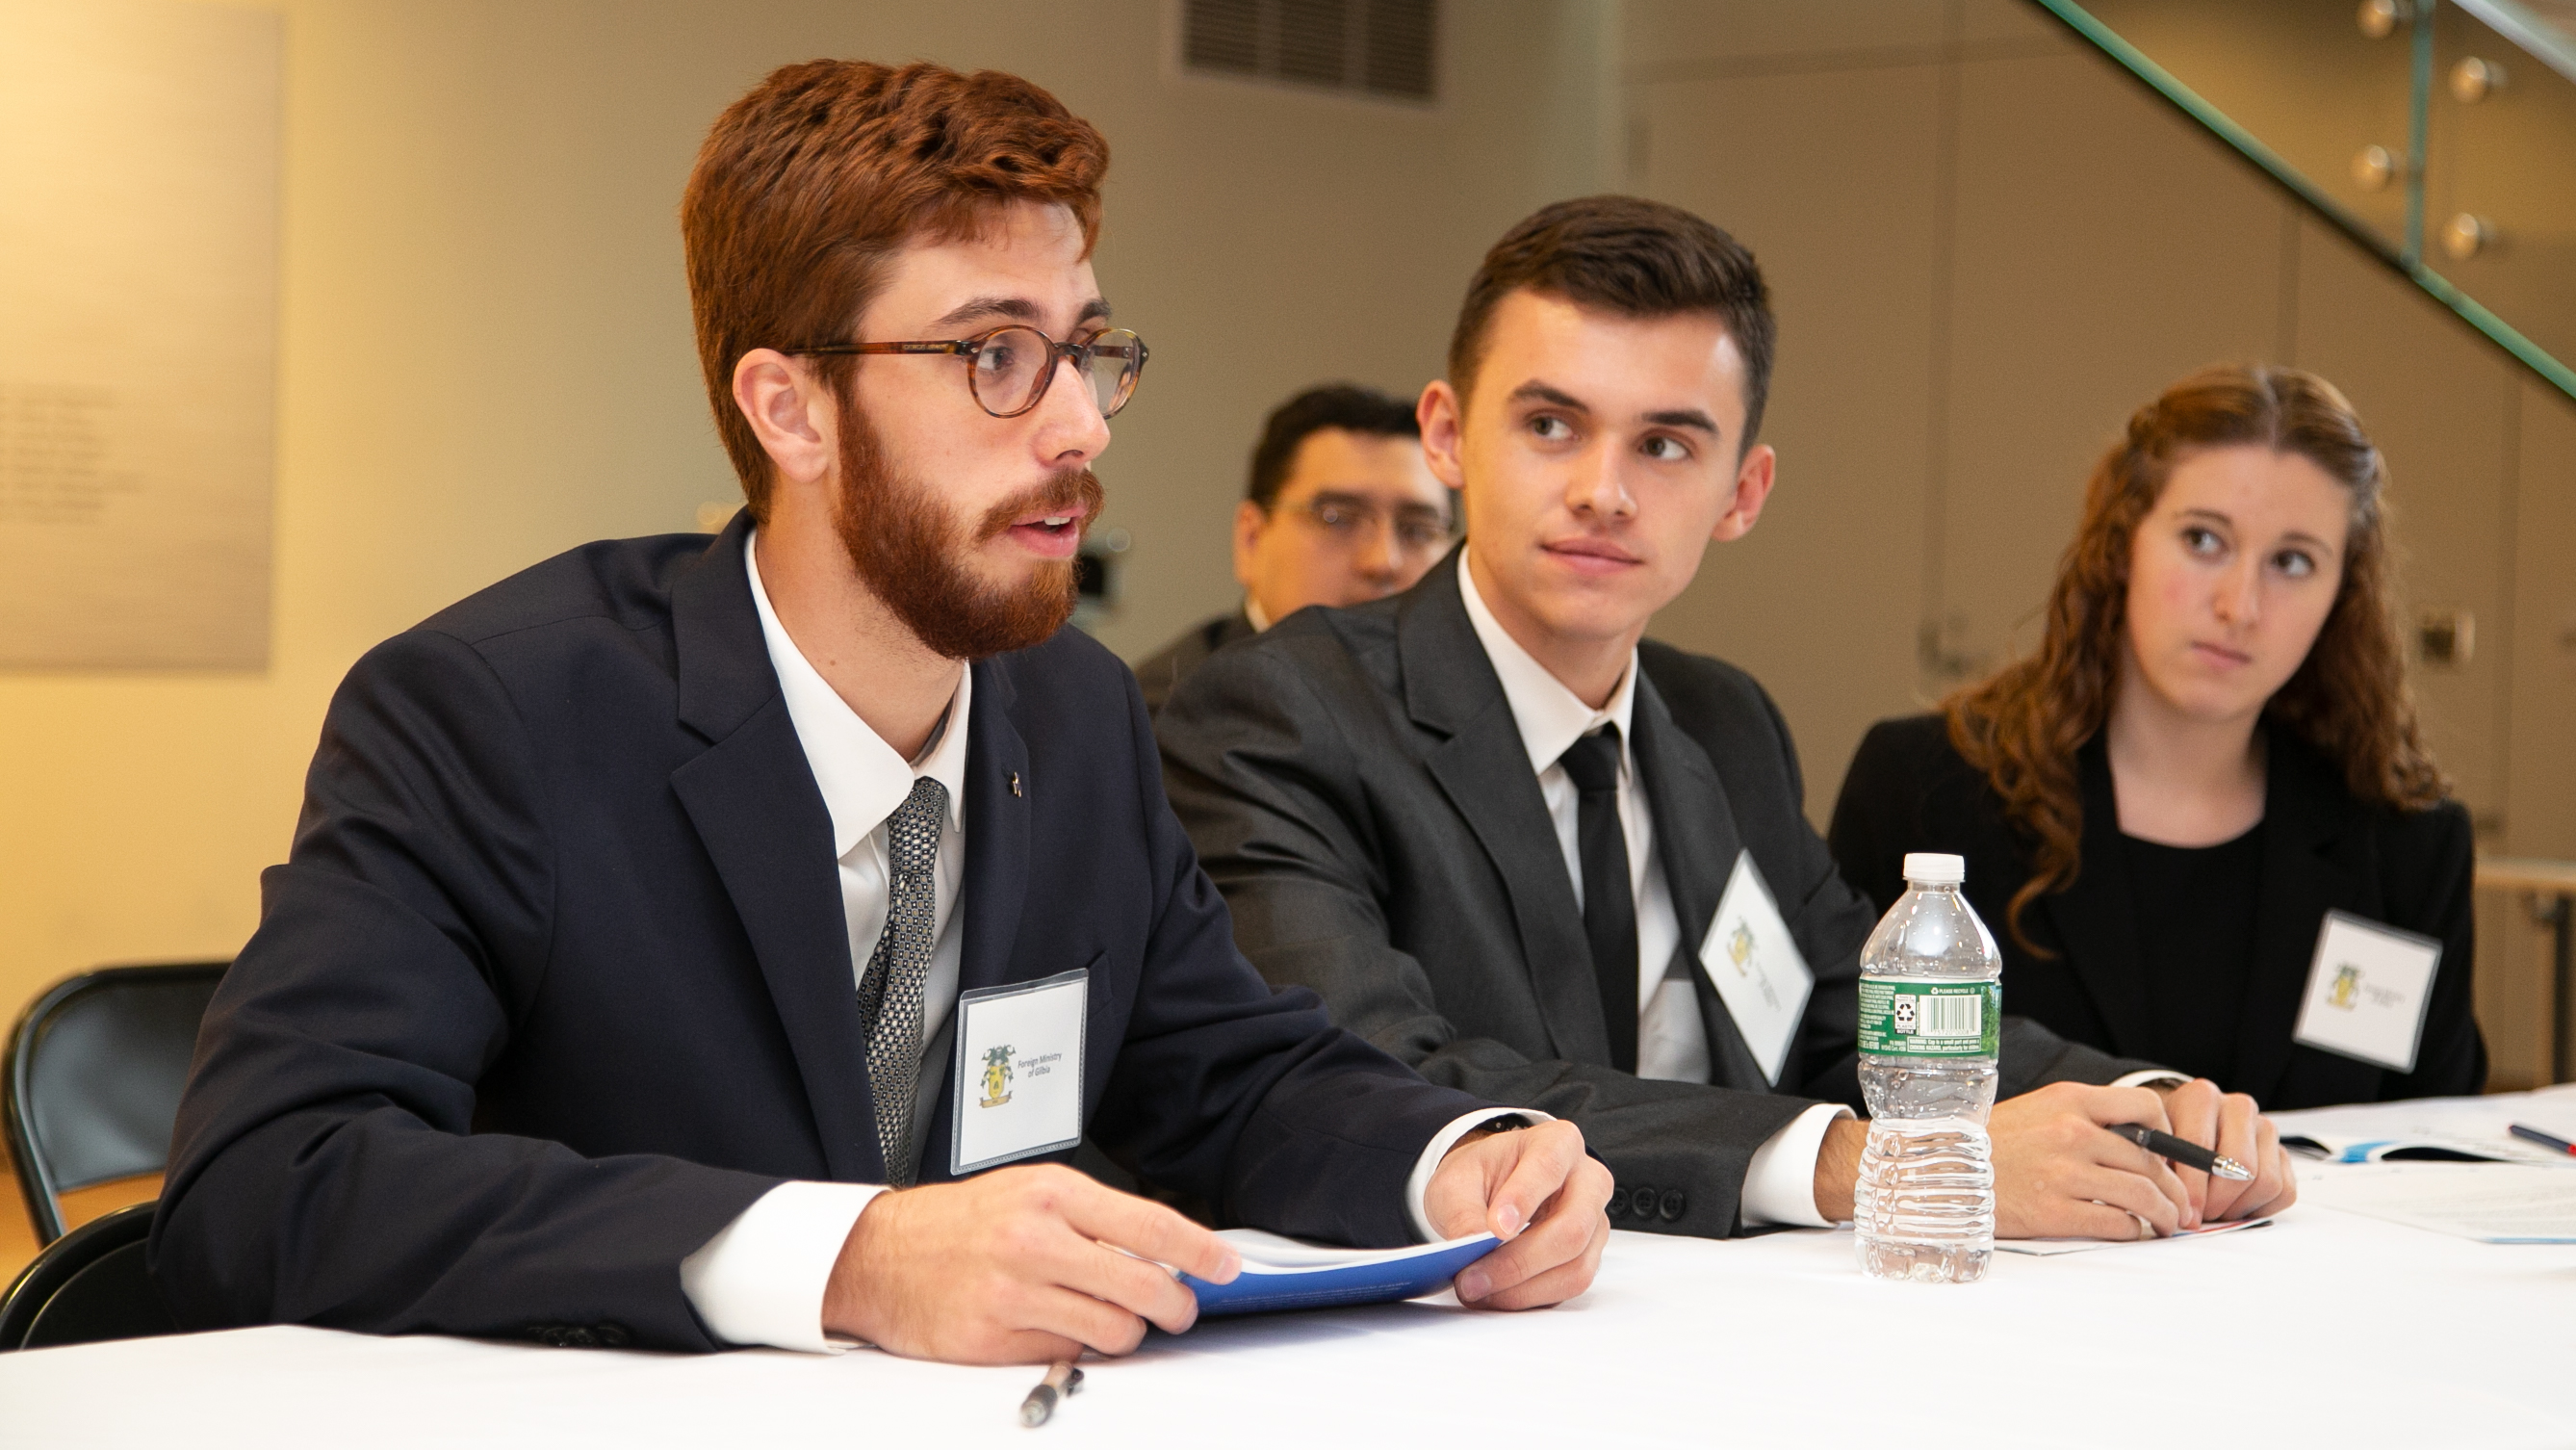 One of three students speak at a table at a simulation.